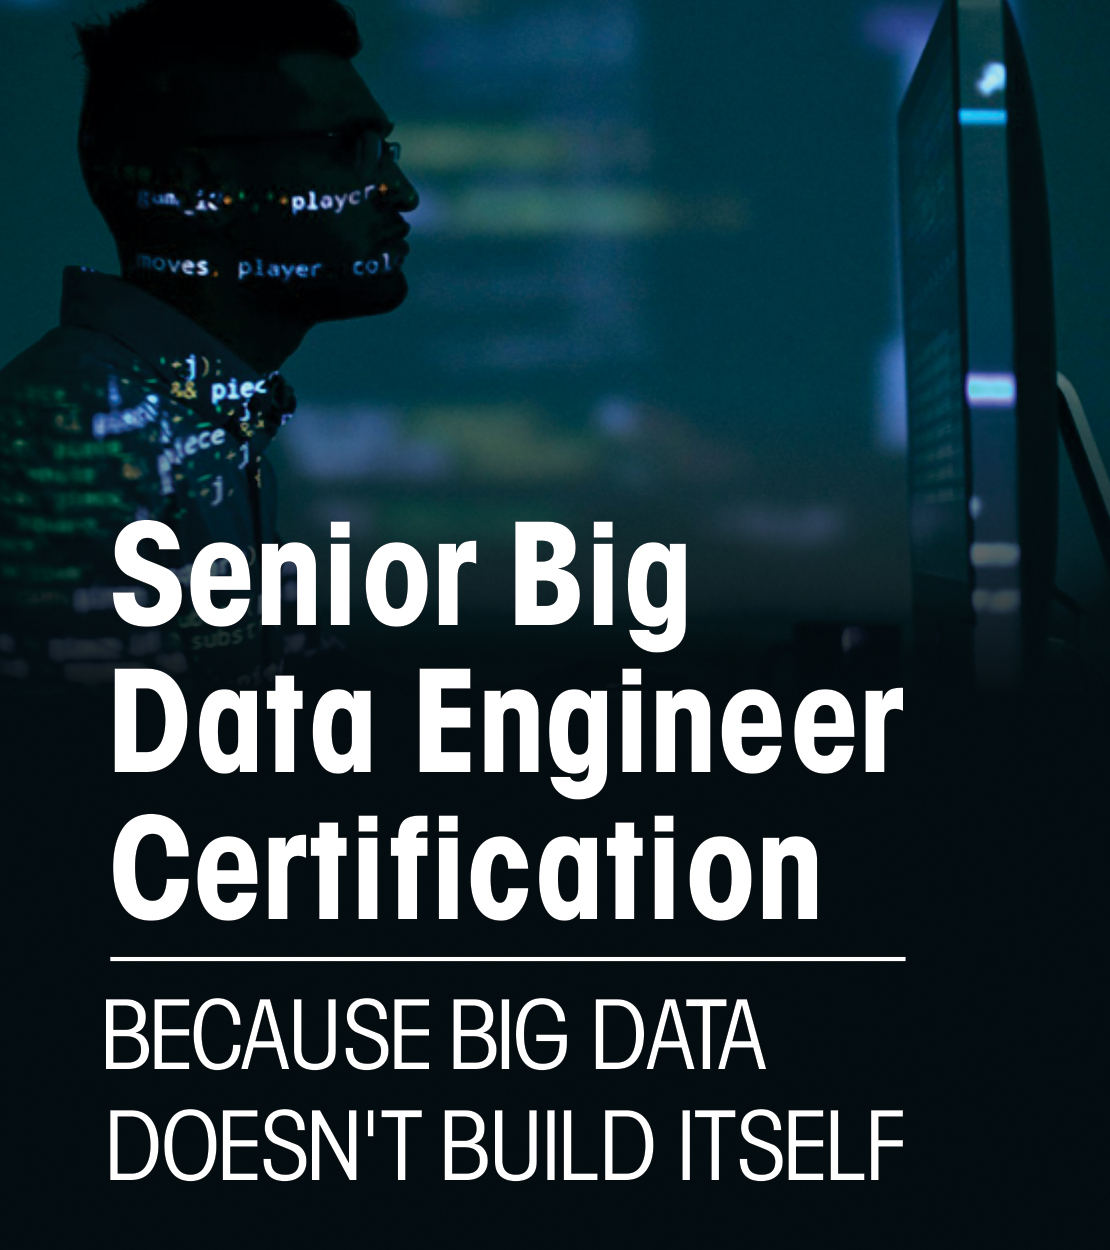 senior-big-data-engineer-certification-thumbnail.jpg